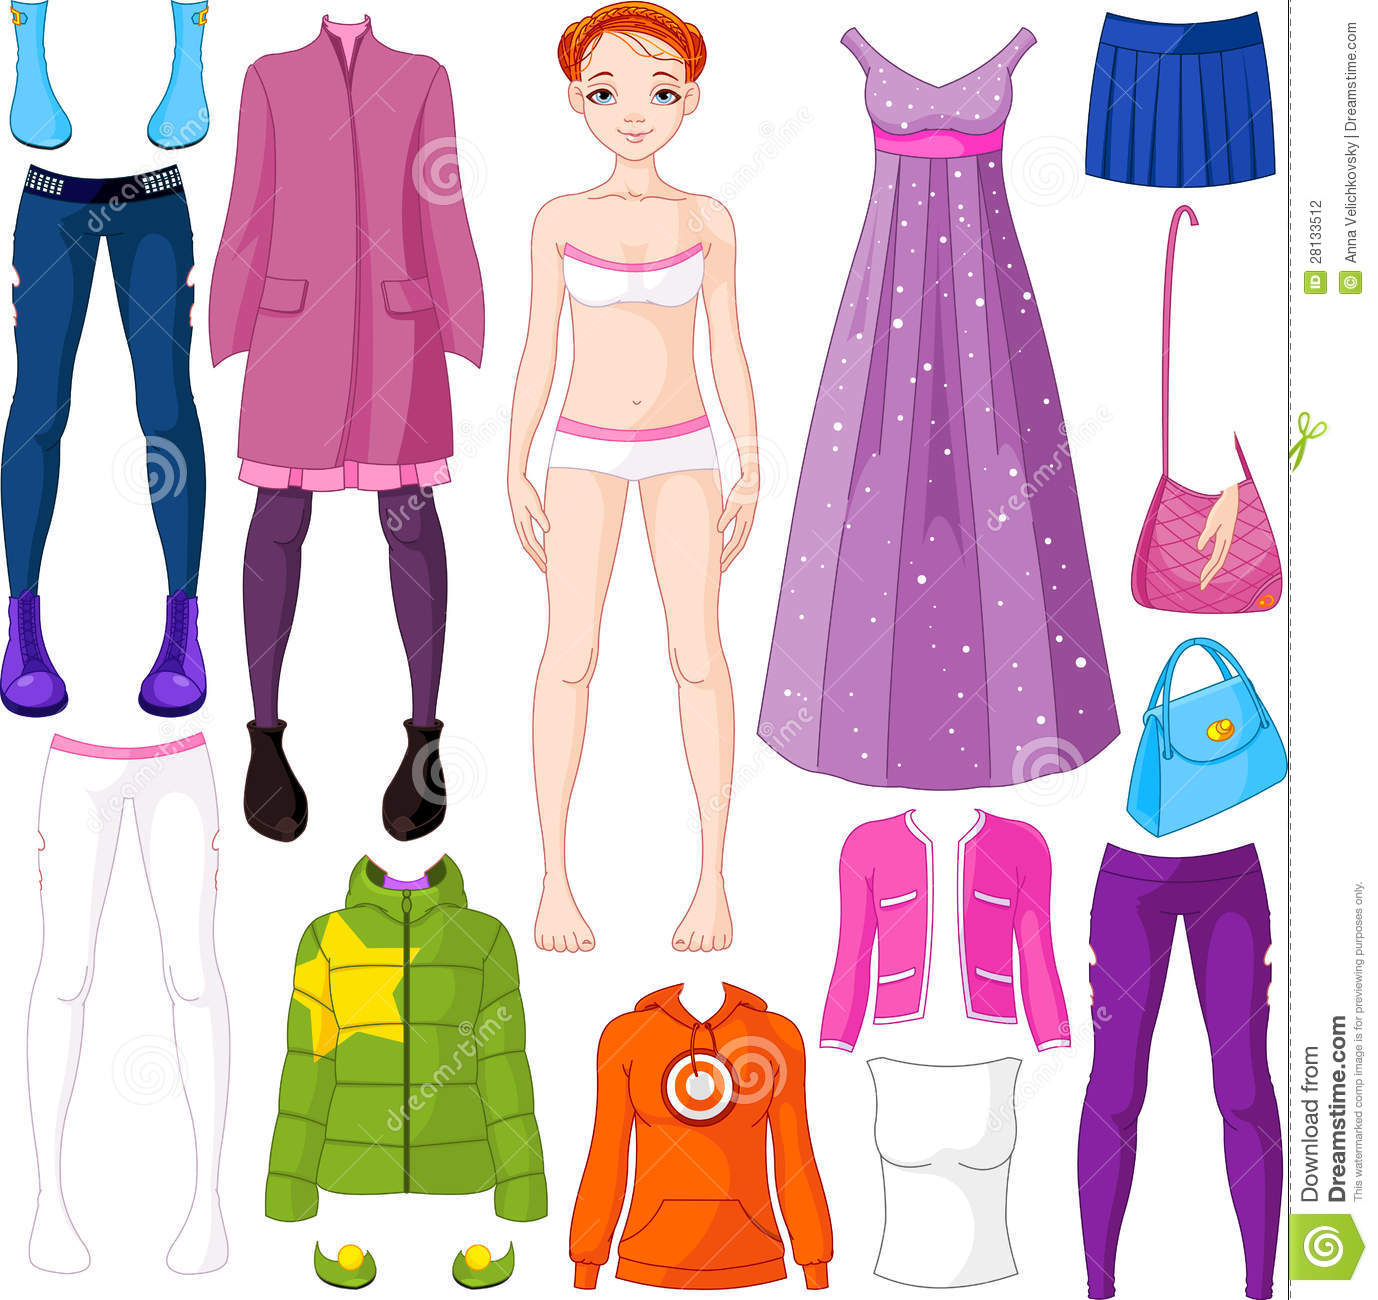 Paper doll with clothing stock photography image 28133512